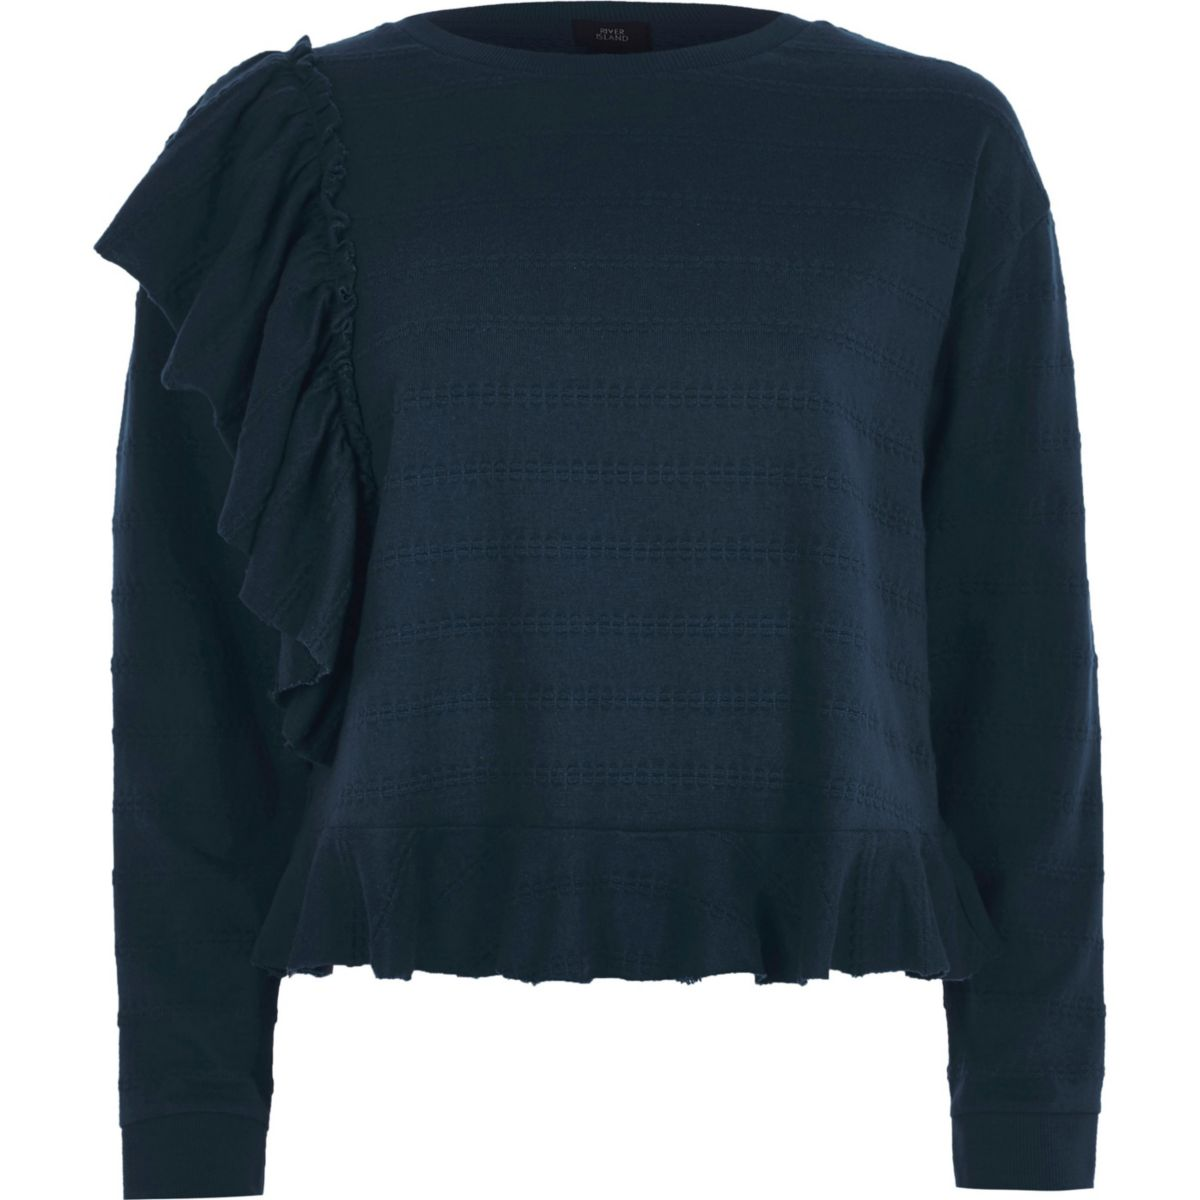 Navy jacquard frill long sleeve top